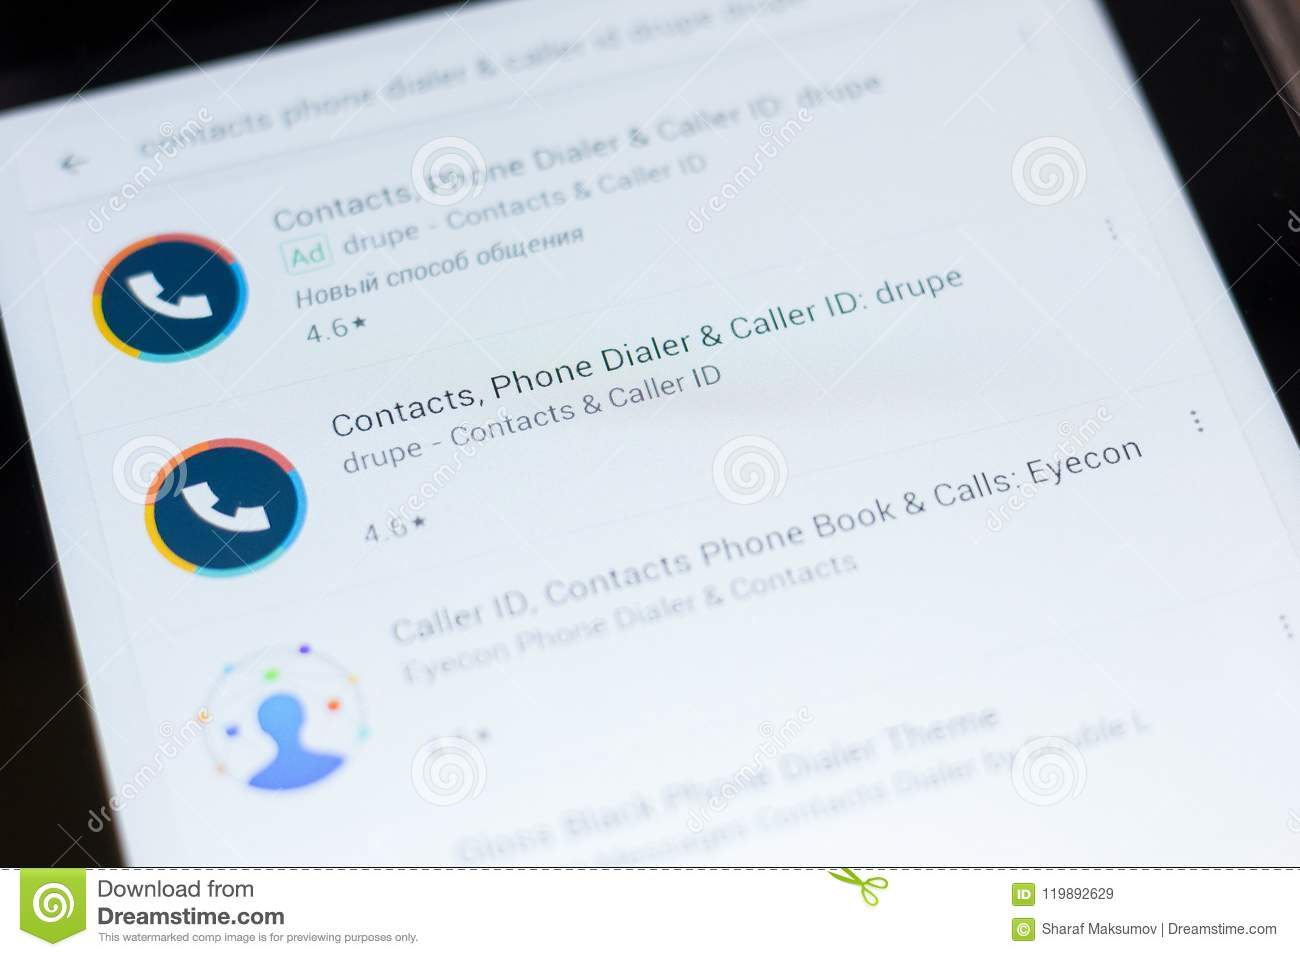 Ryazan, Russia - June 24, 2018: Contacts, Phone Dialer and Caller ID - Drupe icon on the list of mobile apps.